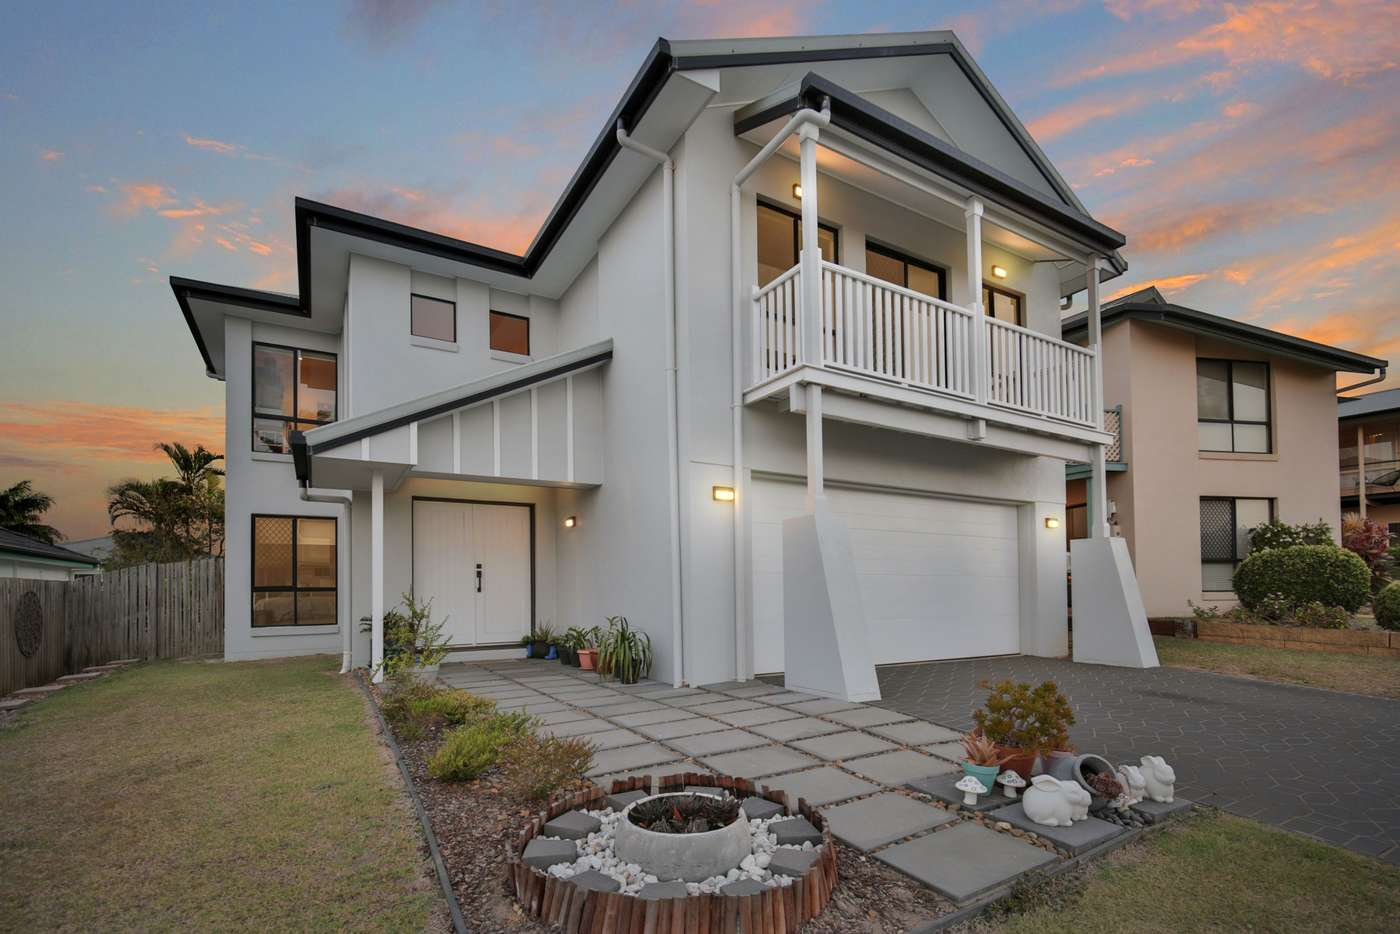 Main view of Homely house listing, 19 Robert John Circuit, Coral Cove QLD 4670